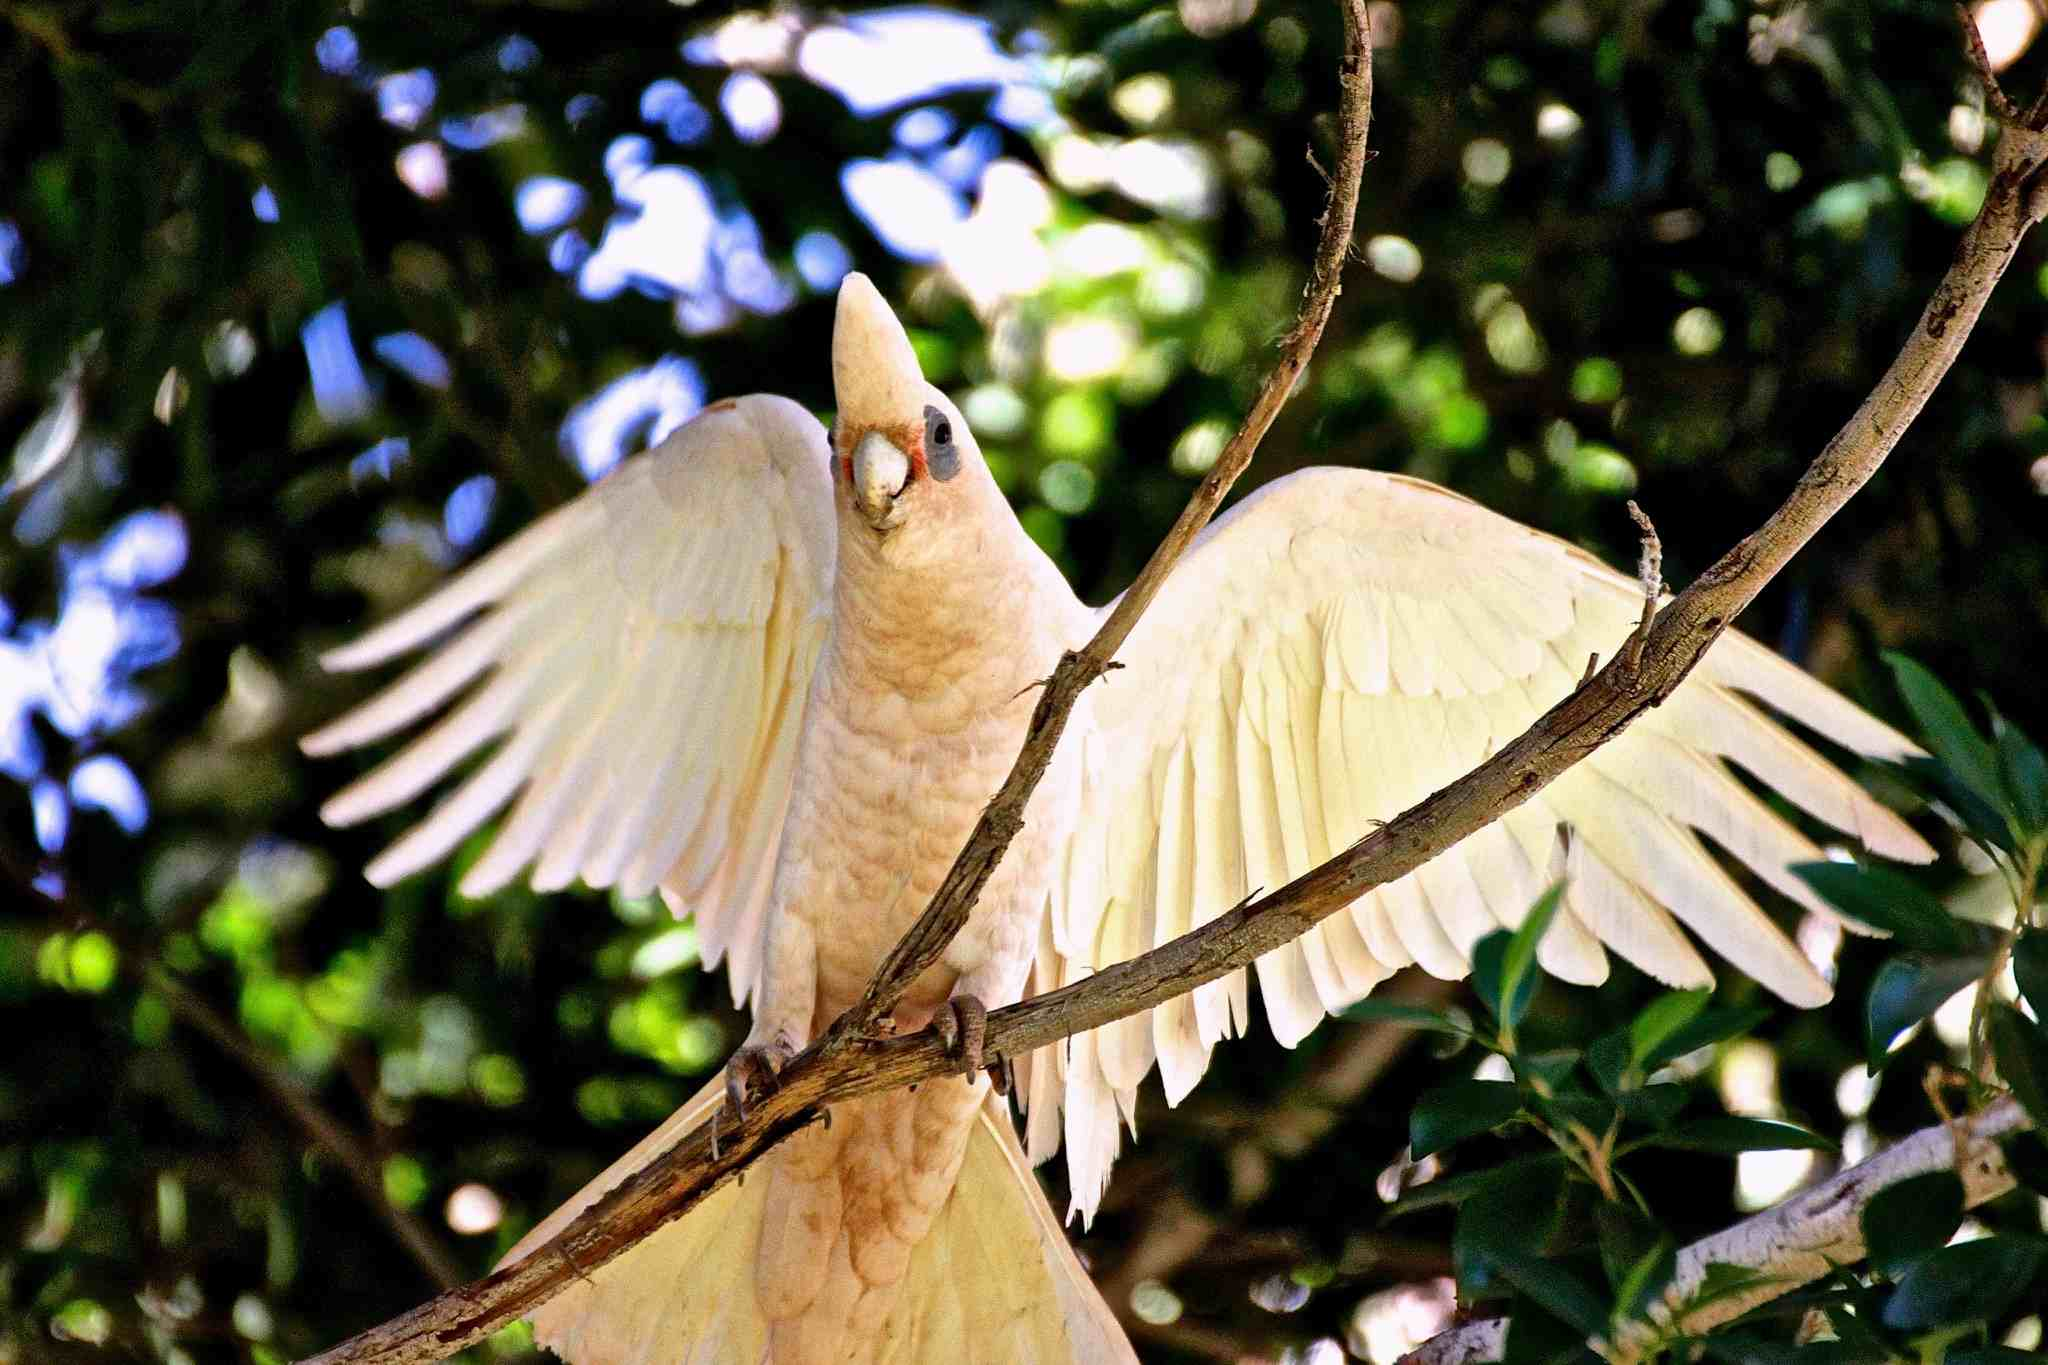 Low Angle View Of Long-Billed Corella Perching On Branch